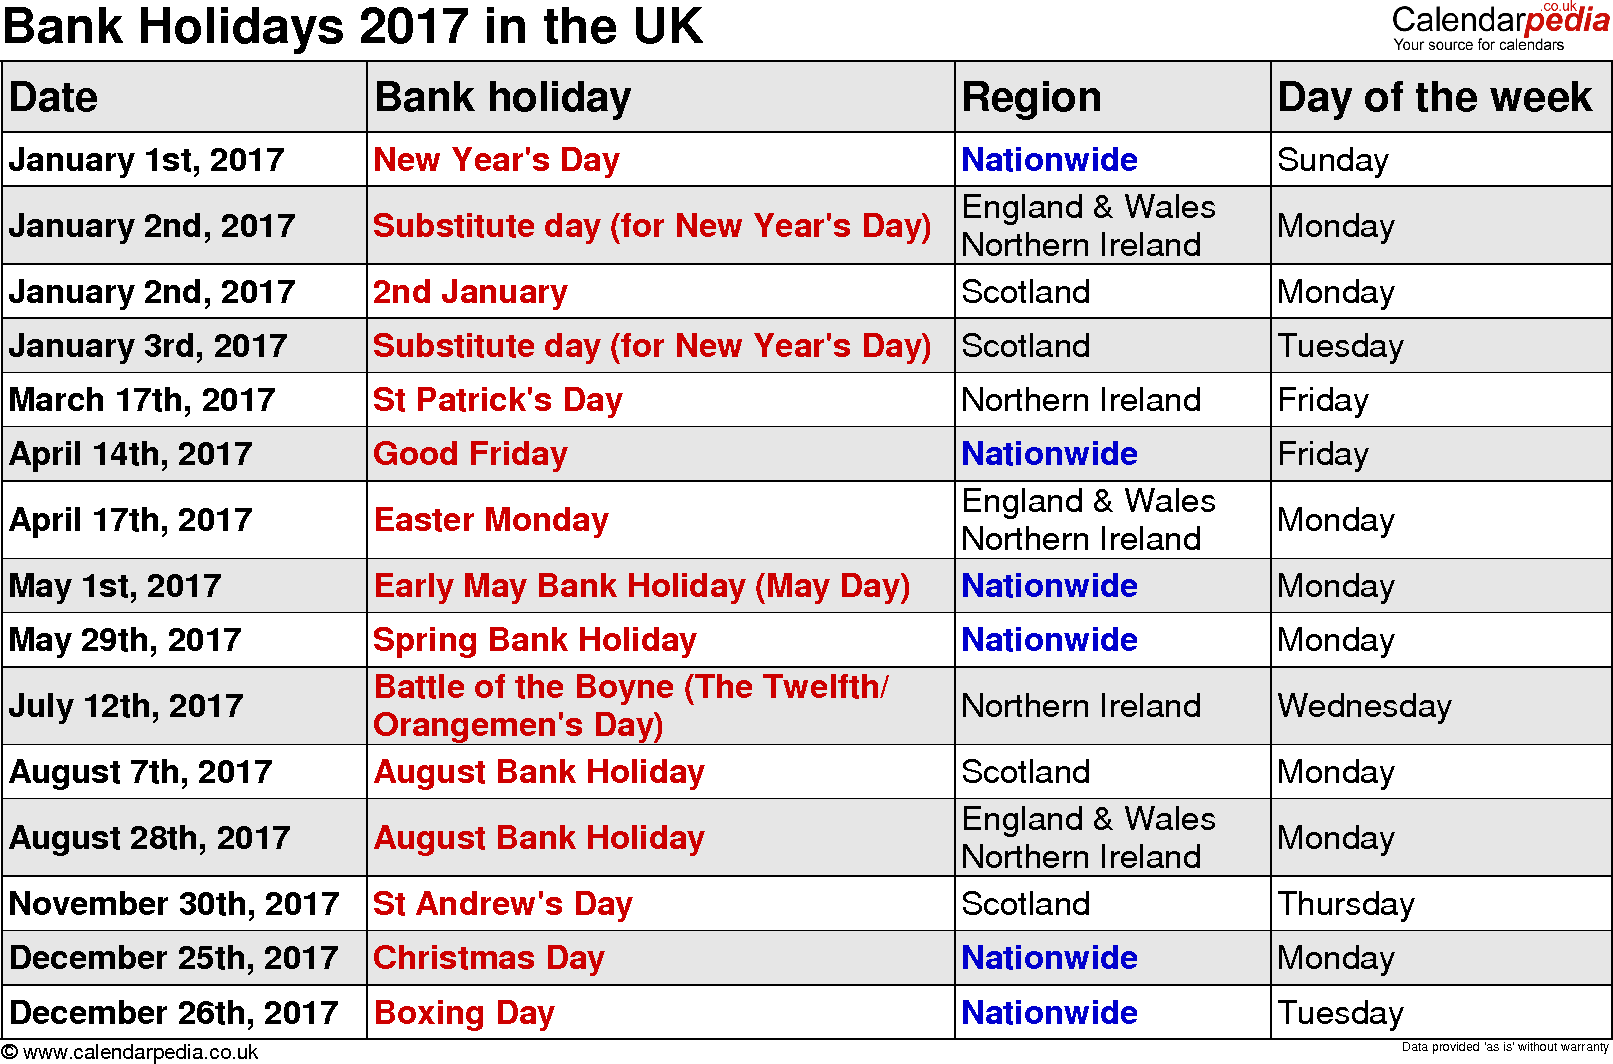 Public Holidays 2017 USA - US Holidays 2017 - Bank Holidays 2017 USA